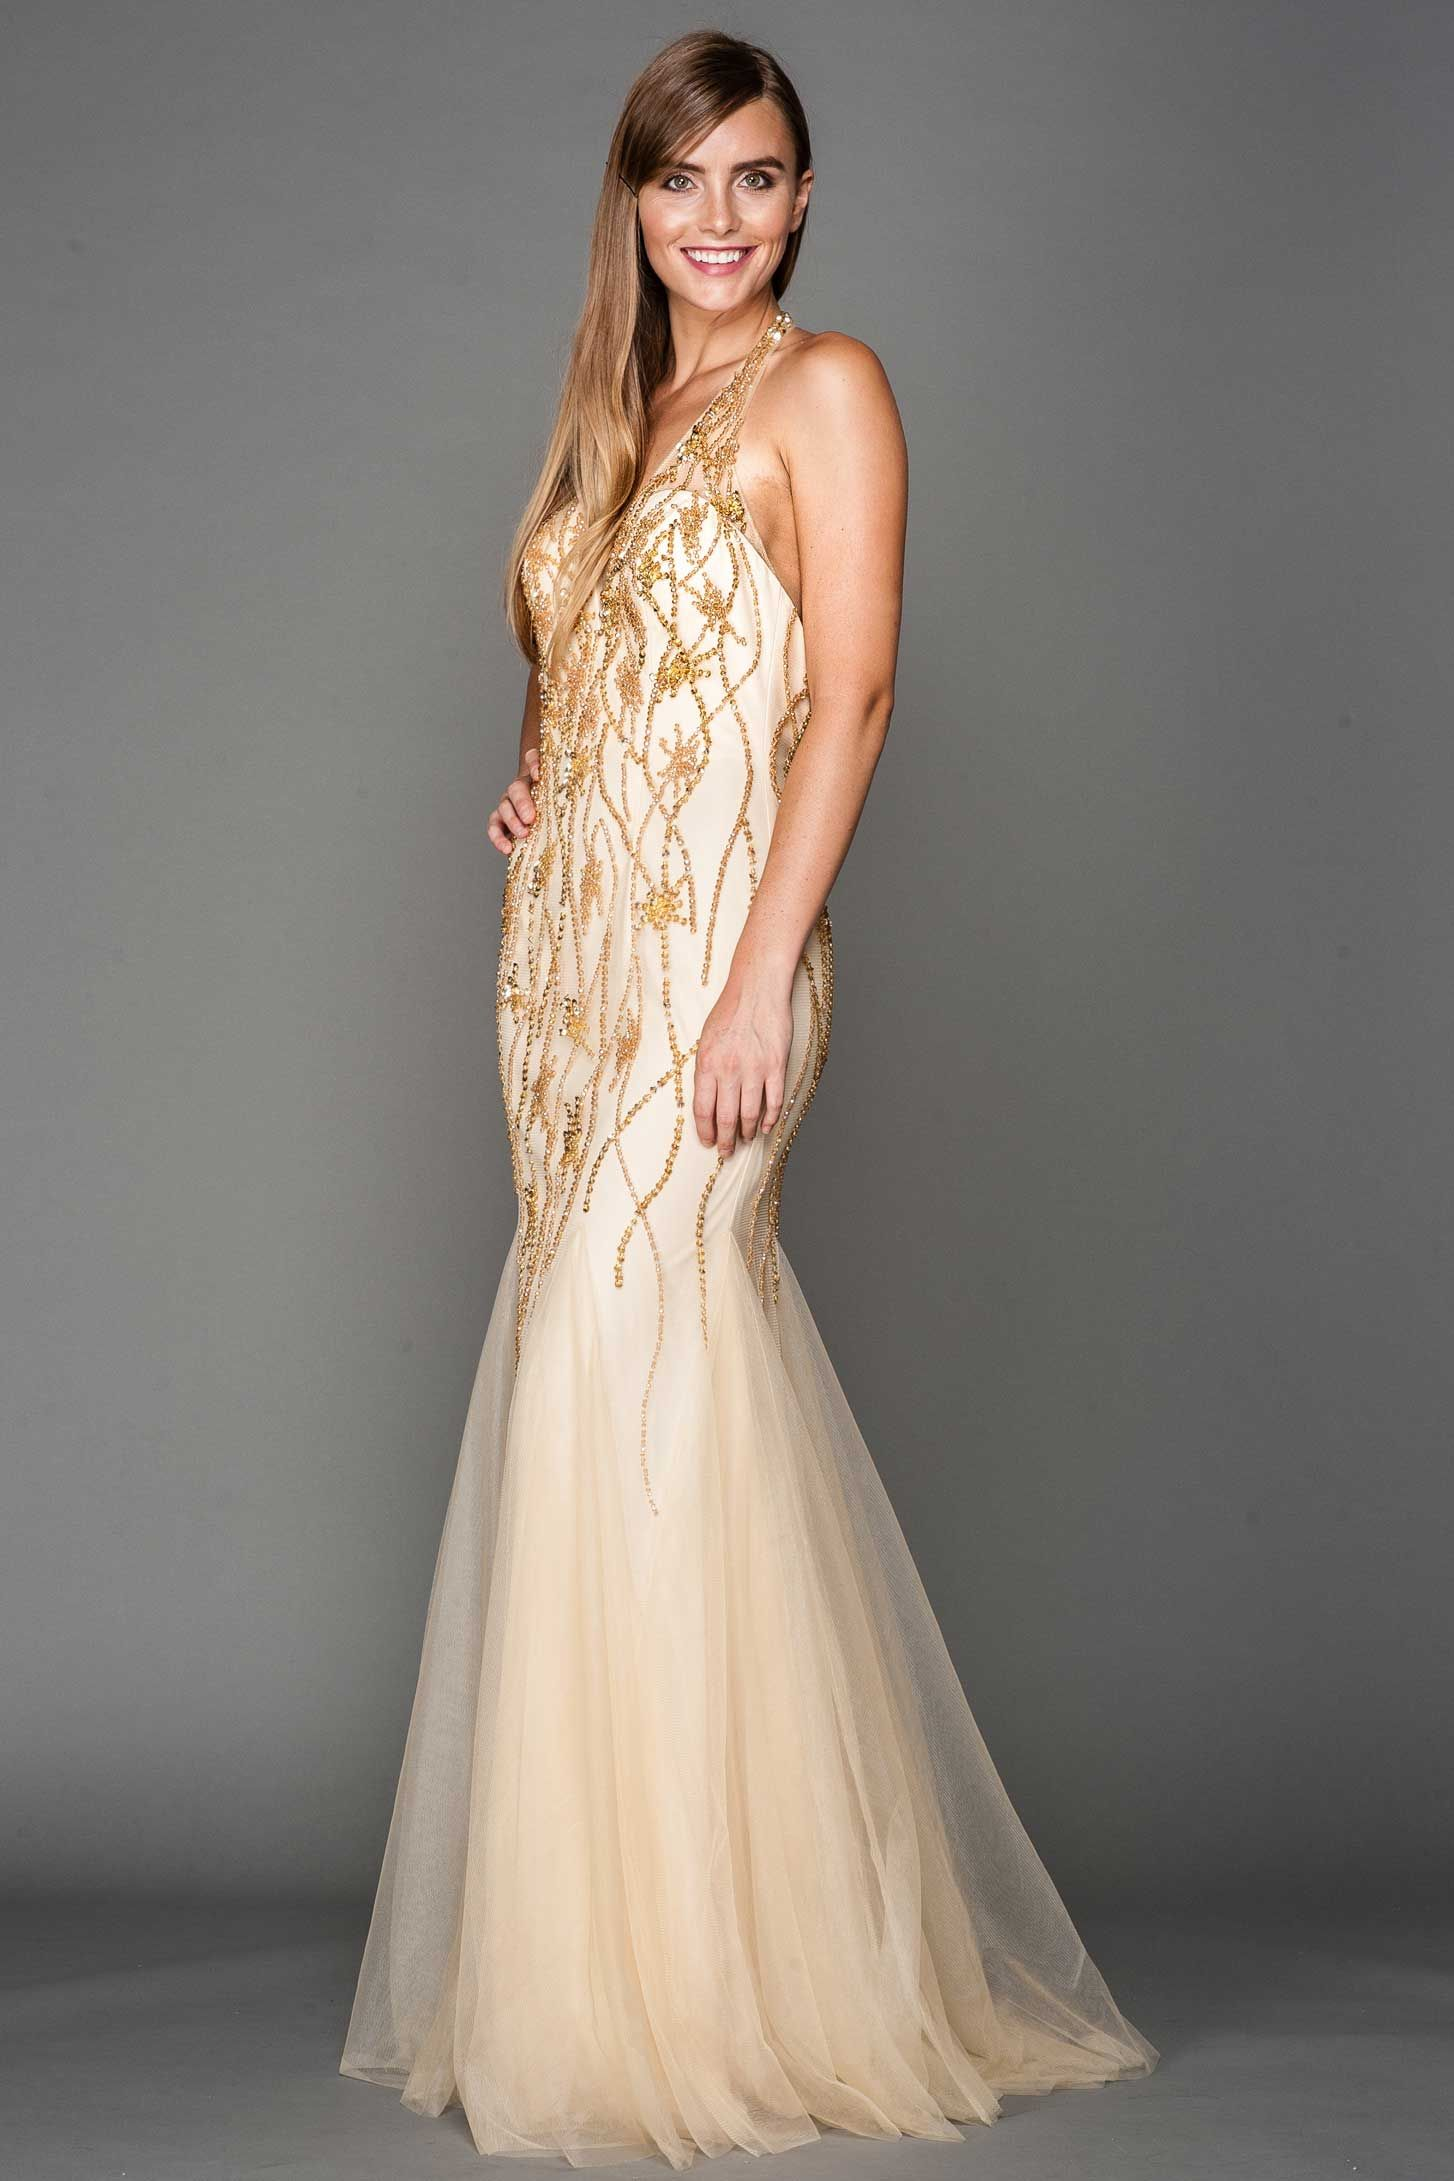 Formal gown ac full length mermaid silhouette prom gown has